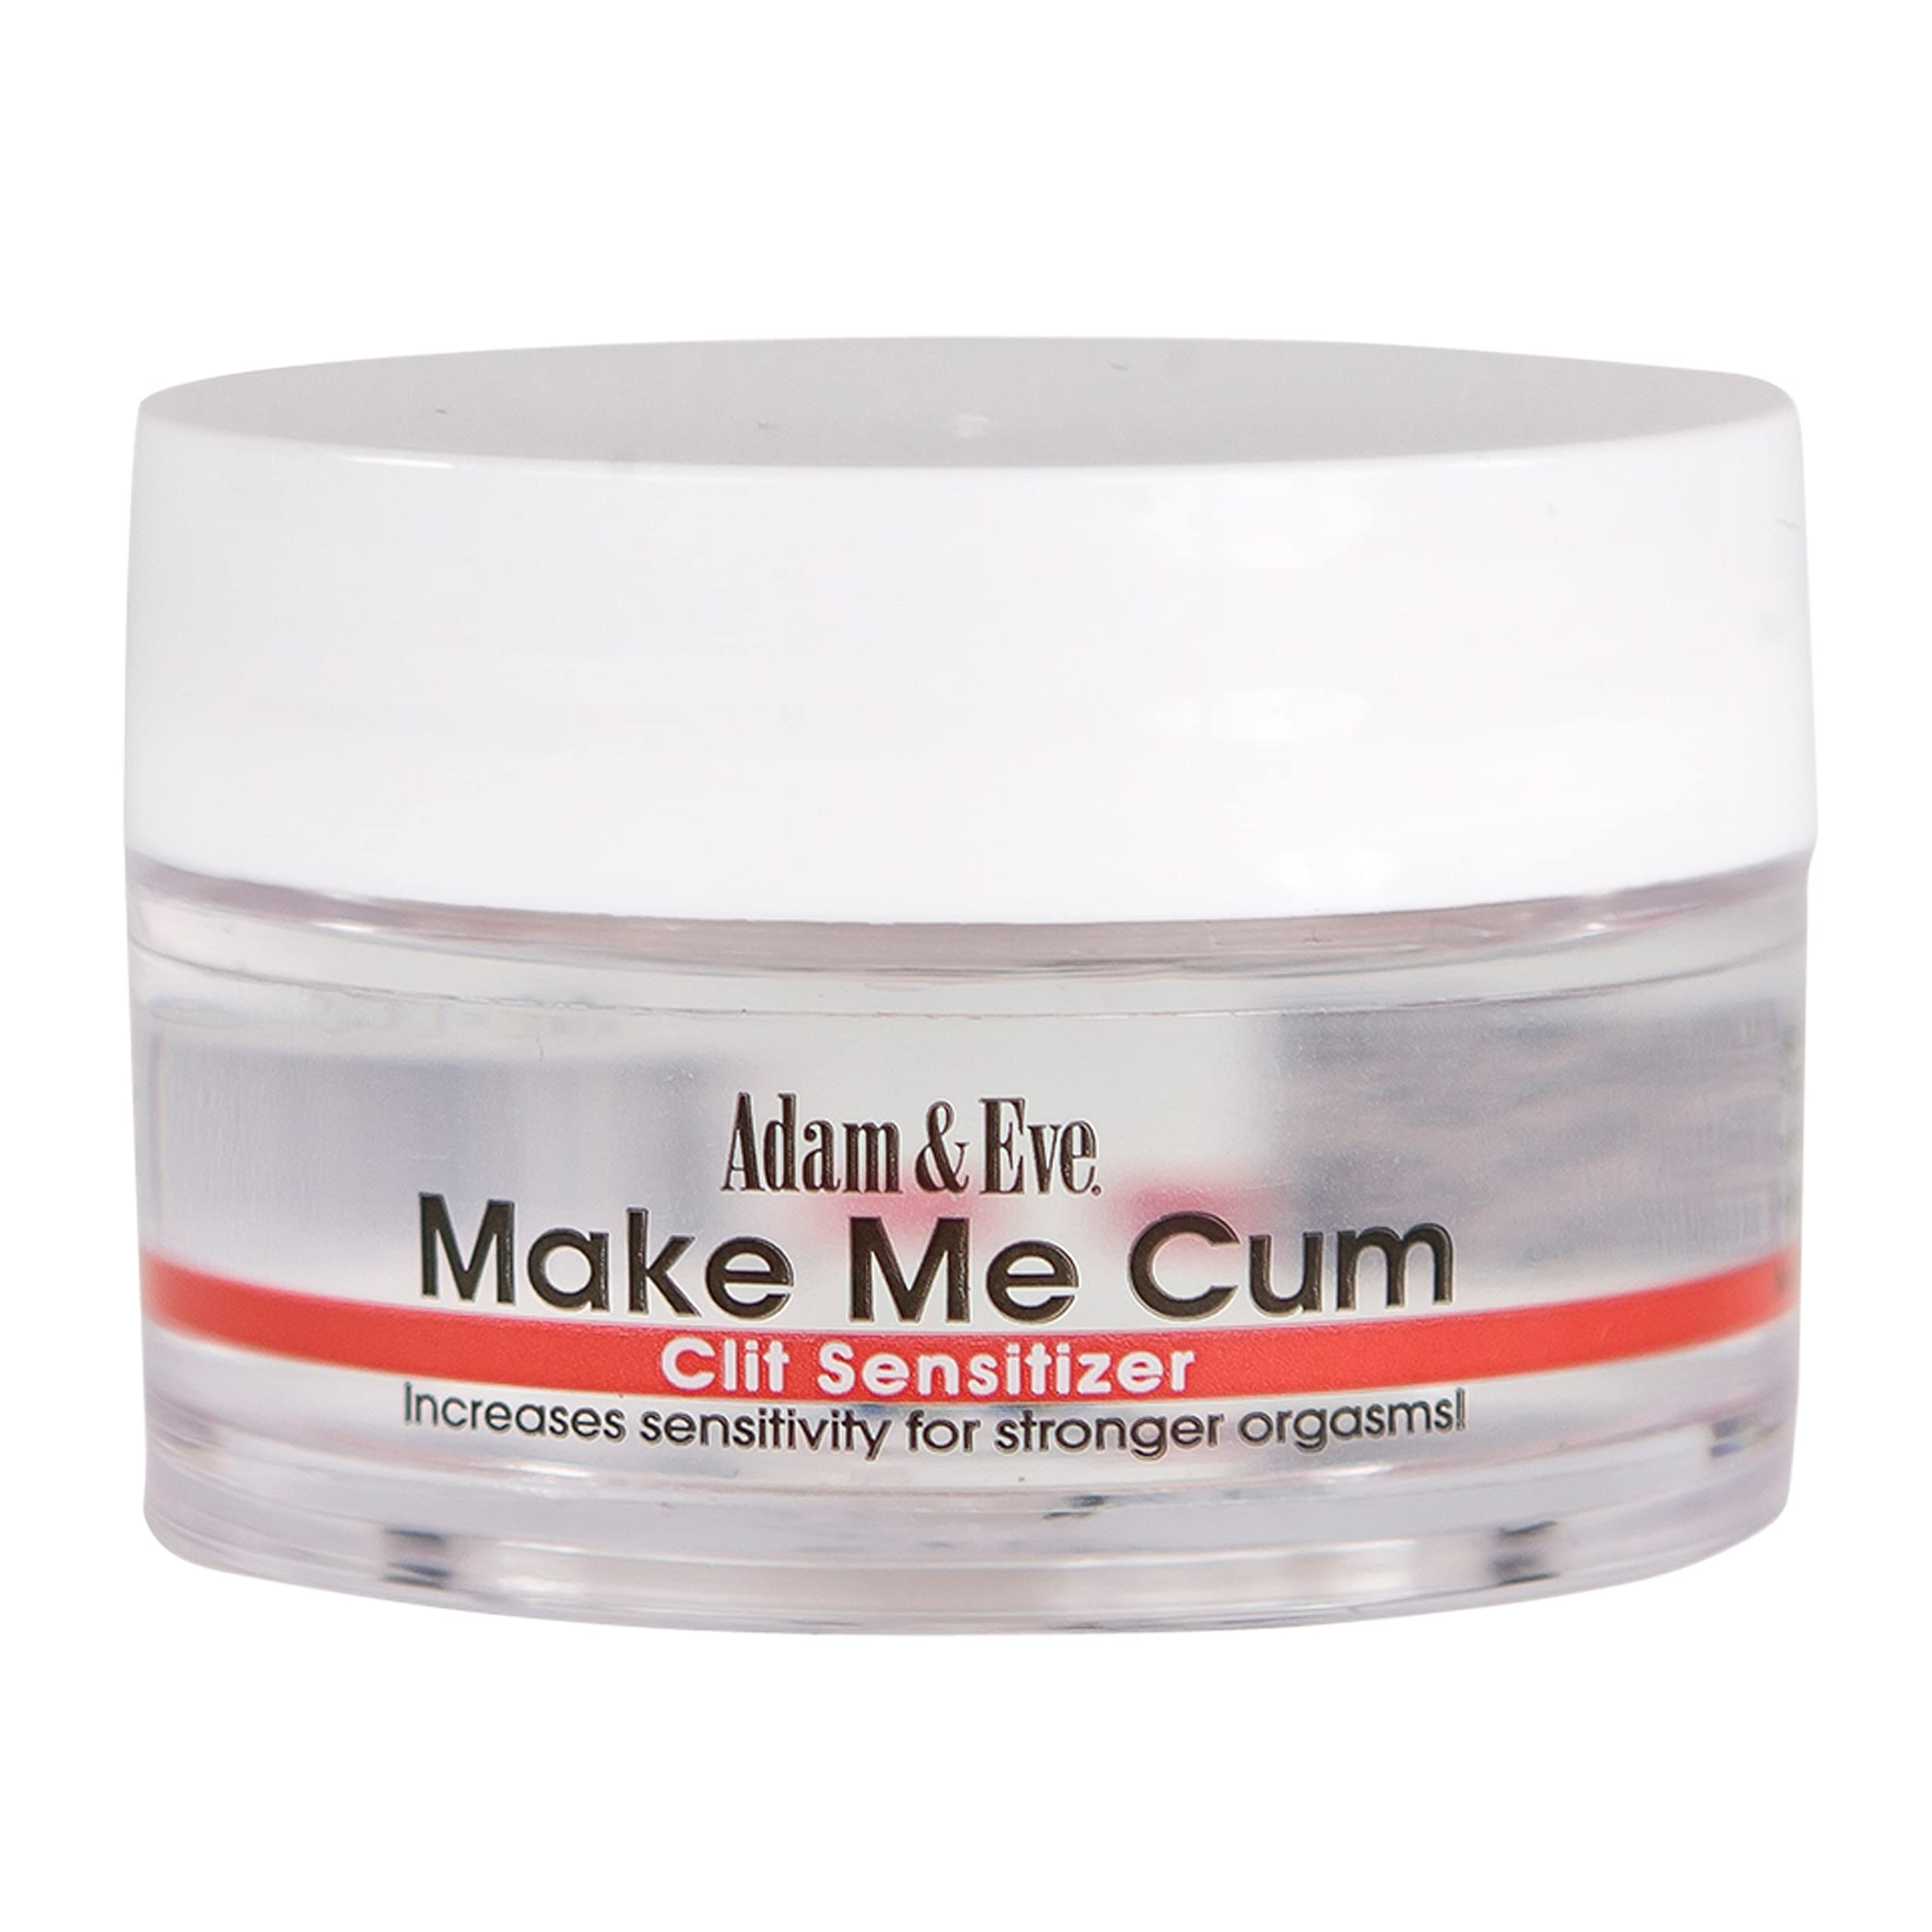 Adam & Eve Make Me Cum Sensitizer 0.5 oz | Stimulation Gel and Water Based Lube for Women